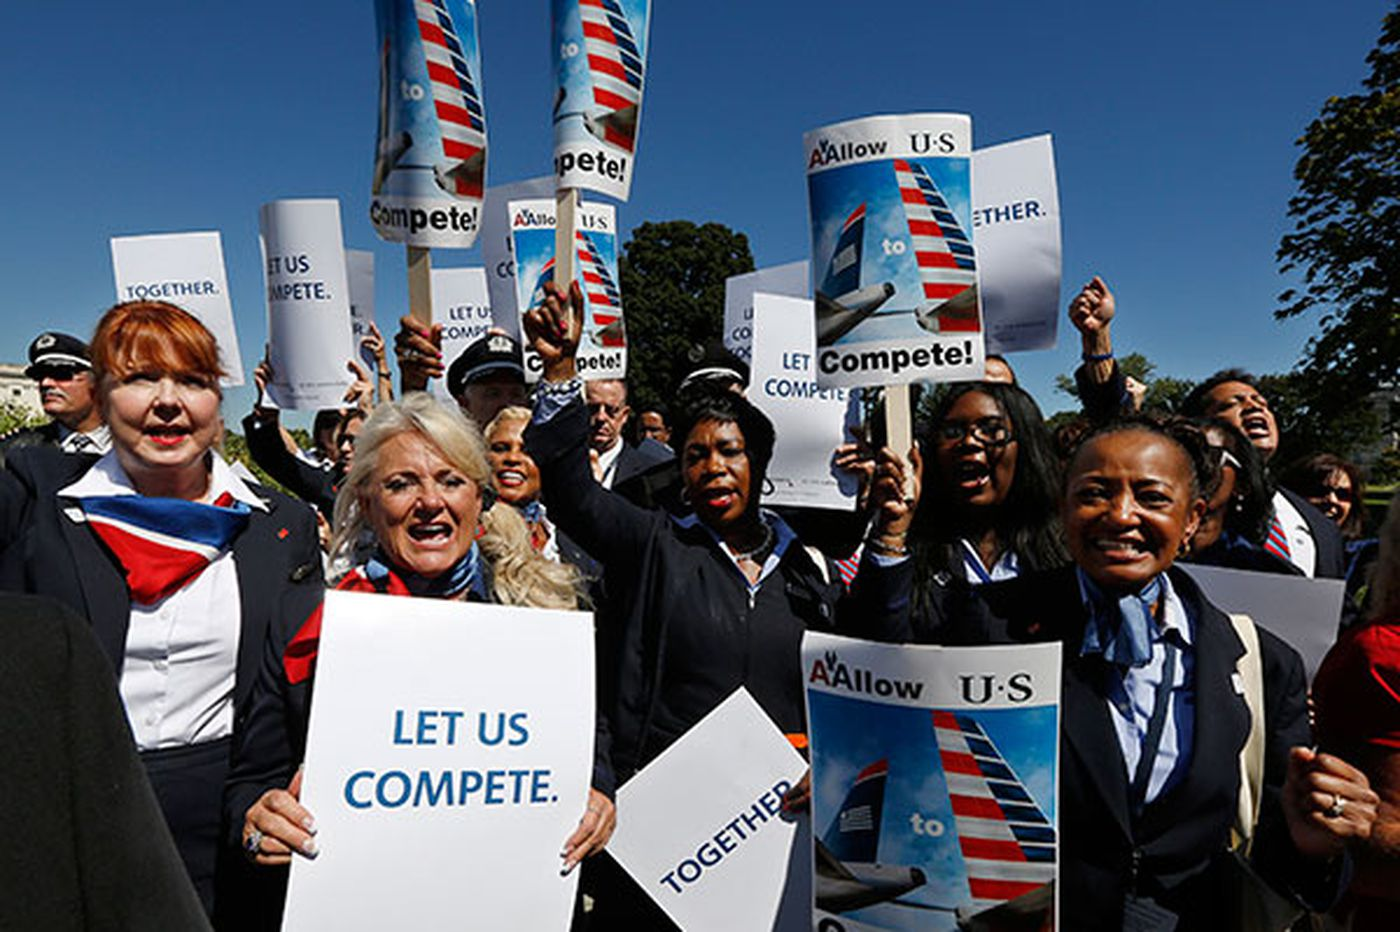 US Airways unions say 'critical issues' unresolved in merger